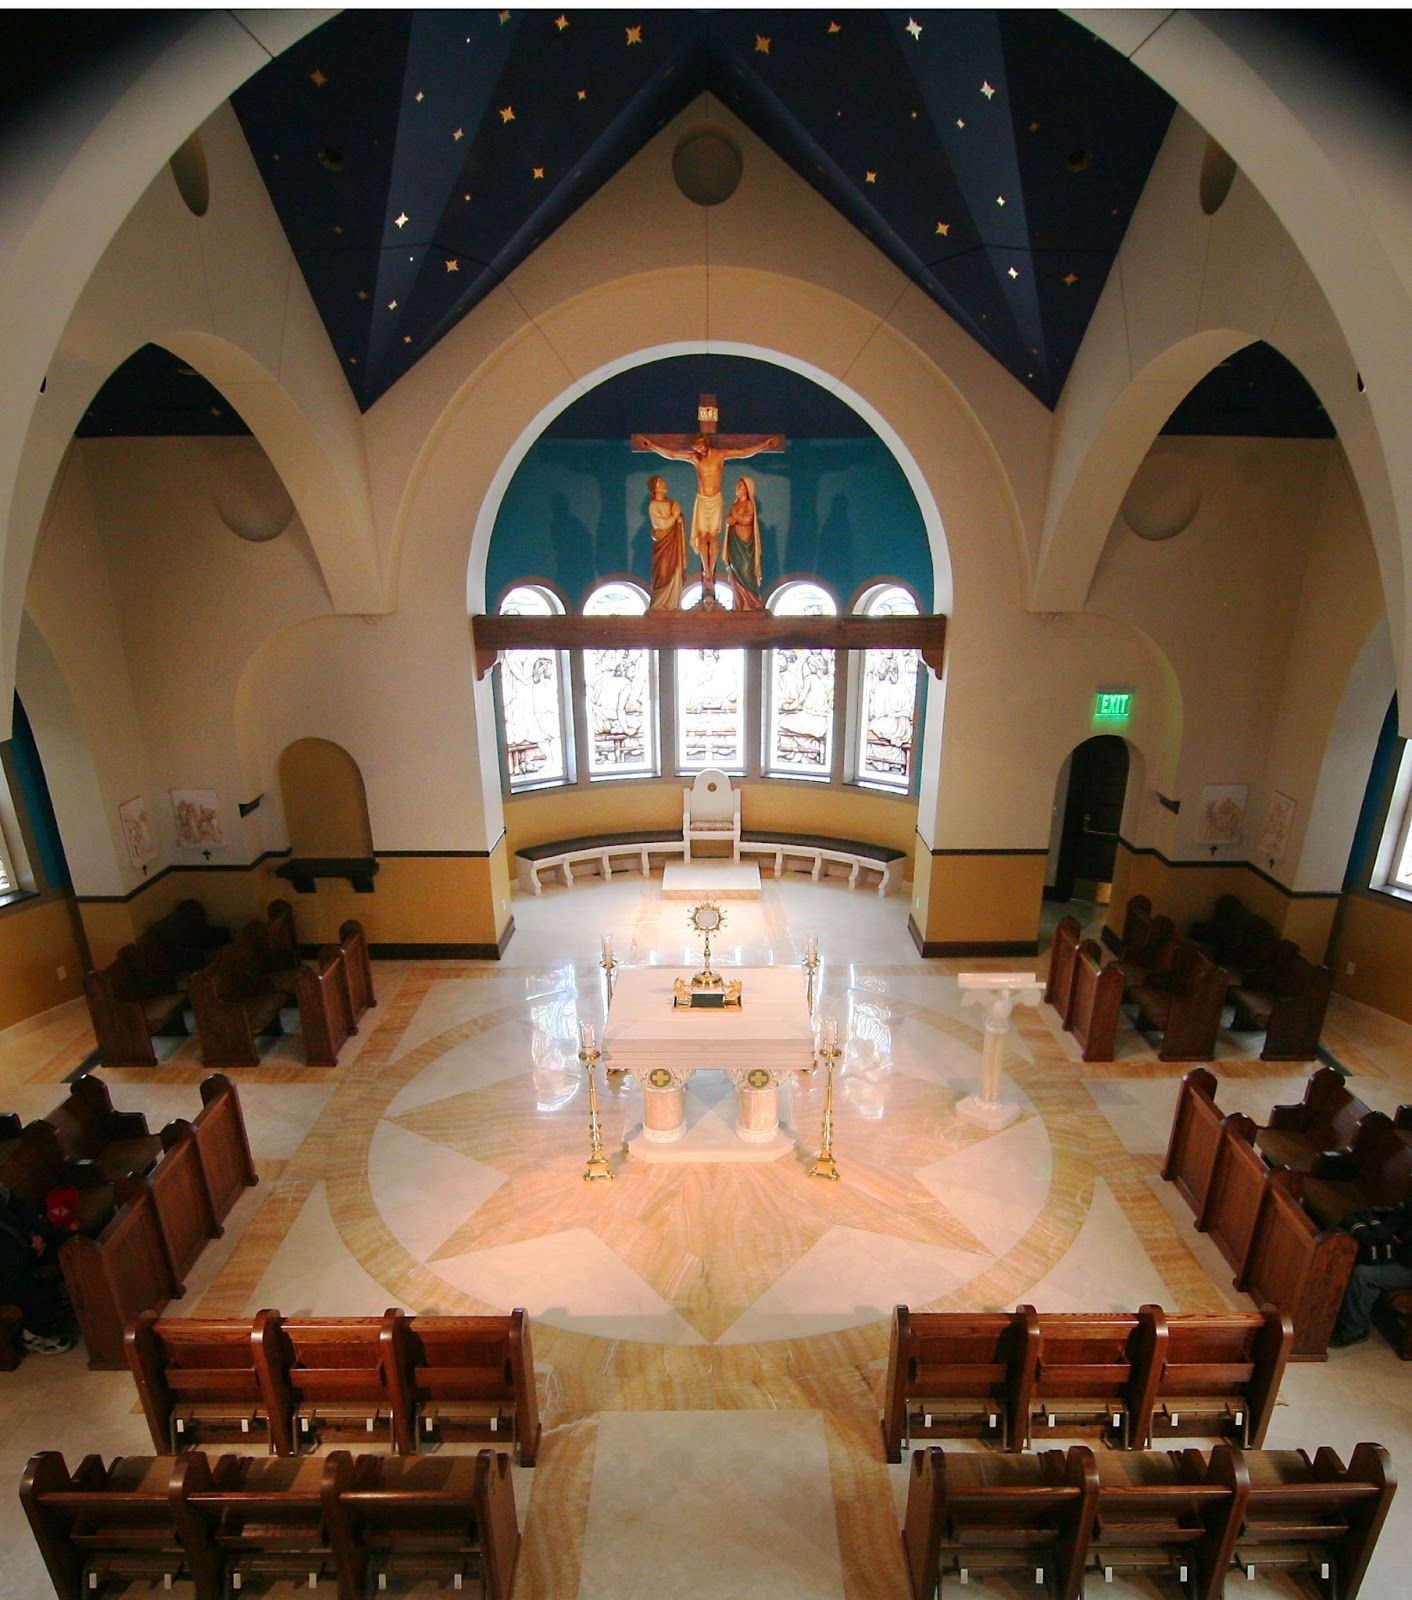 Pin By Adil Taj On Ceiling In 2019: Our Lady Of Guadalupe Adoration Chapel, Fargo, ND. New